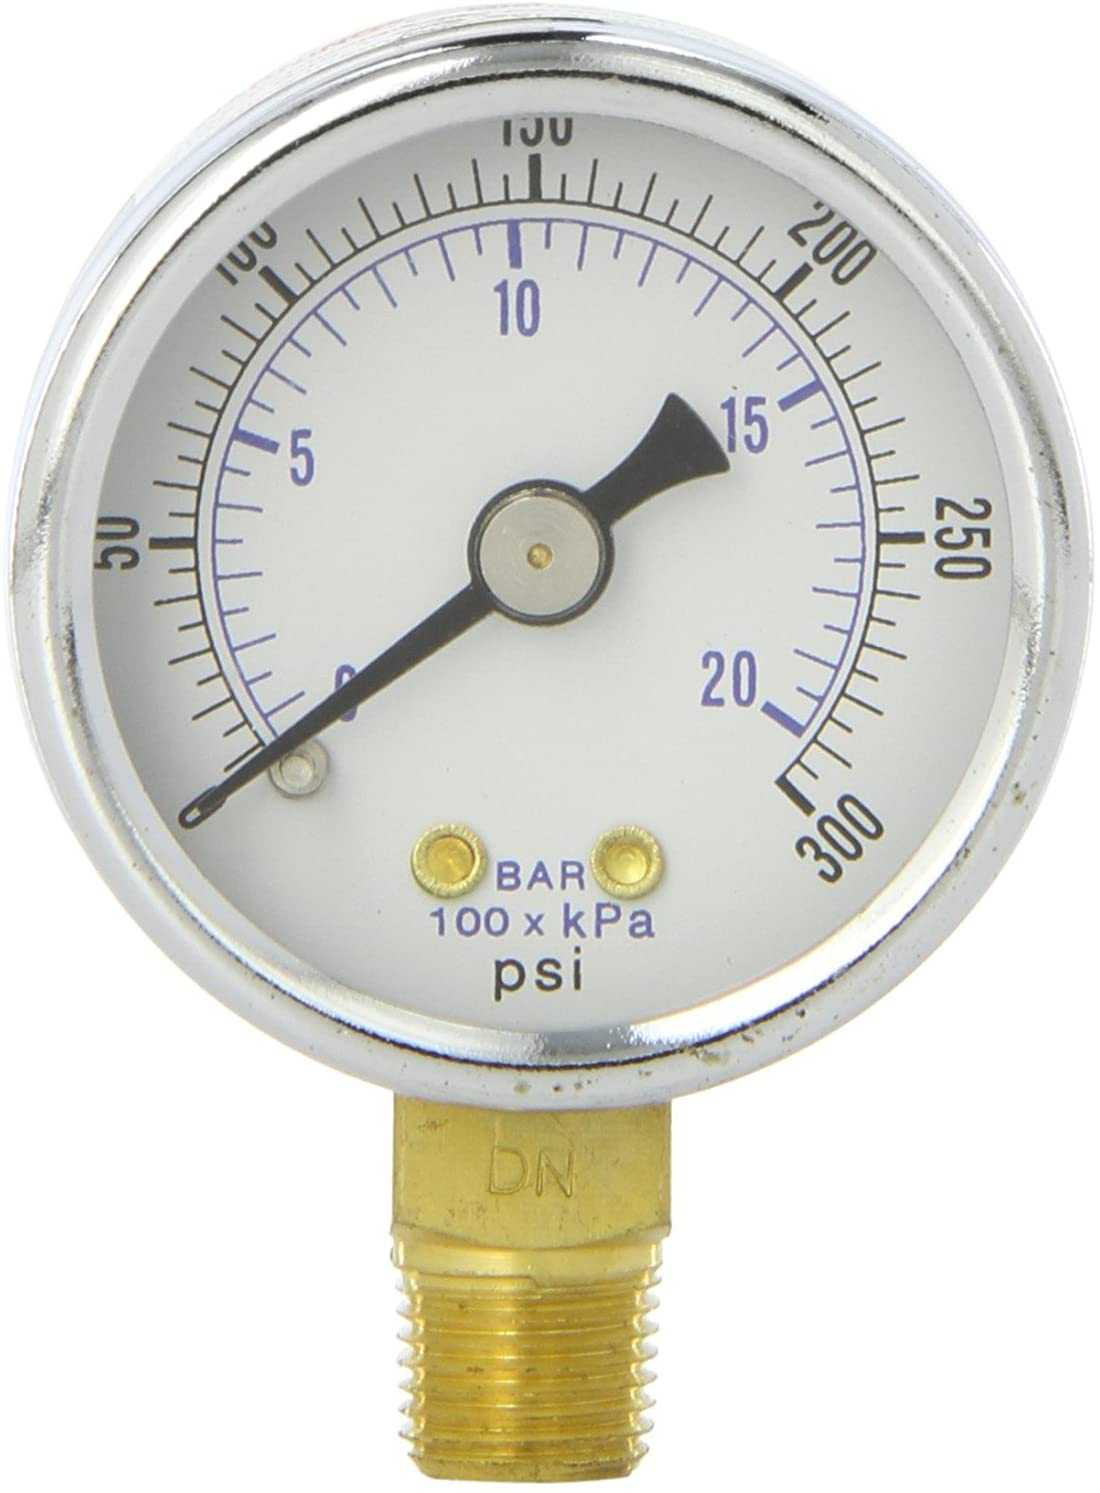 Sellerocity Heavy Duty Compressor Gauge Compatible with Campbell Hausfeld GA016300AV Includes Roll Of Thread Tape